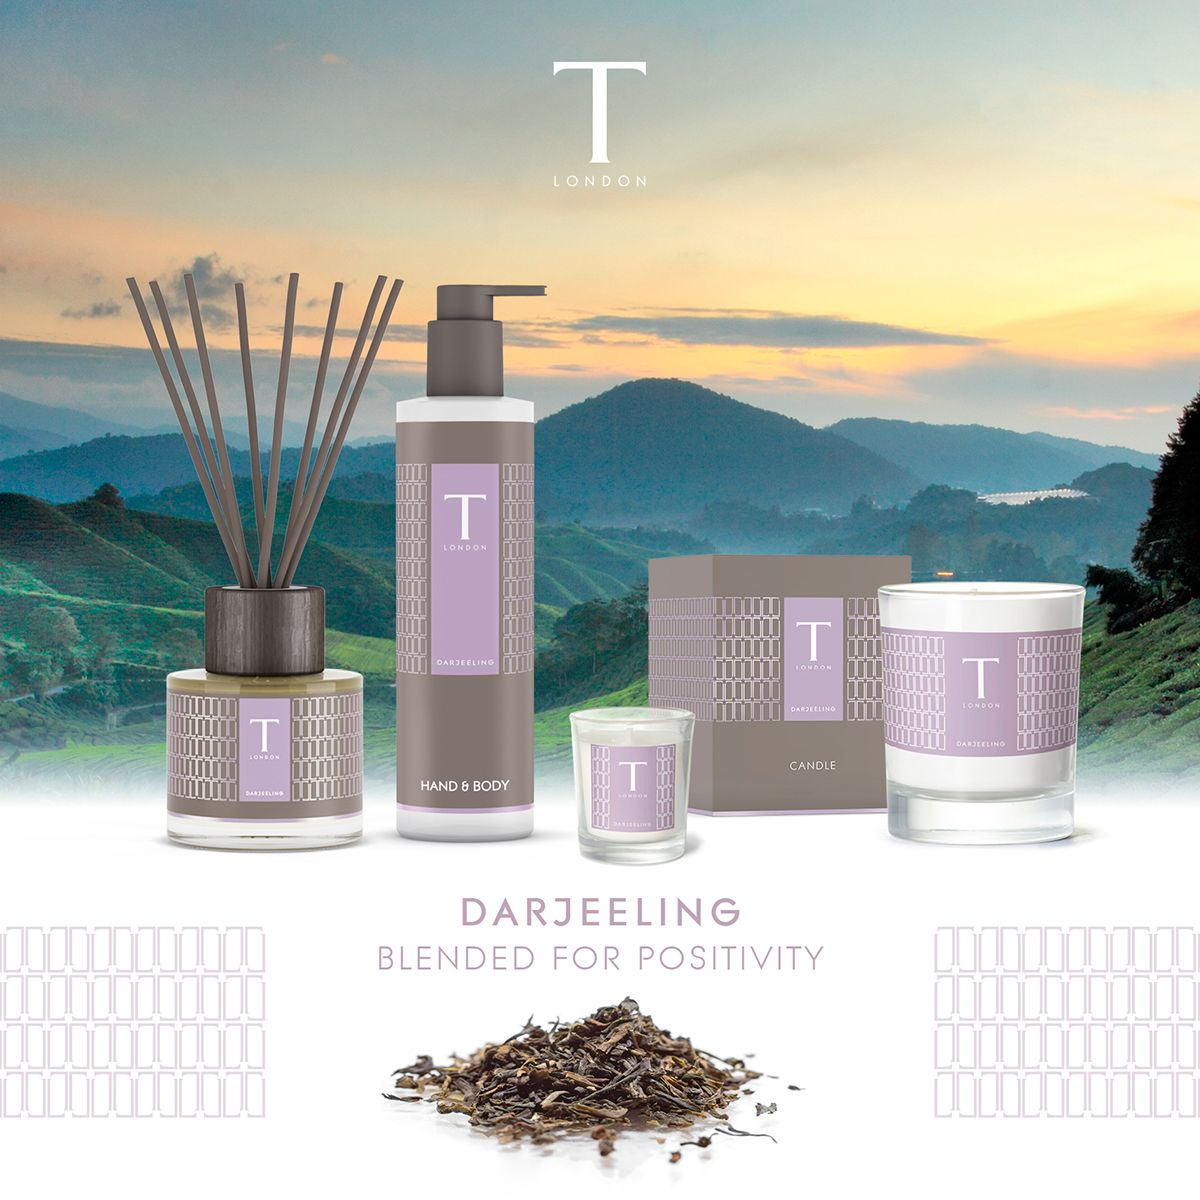 T London draws it's inspiration from the magical tea leaf and its restorative benefits. We worked with them to develop the brand and packaging for their home fragrance and body collections – all distinctively blended to help enhance moods. T London crea…